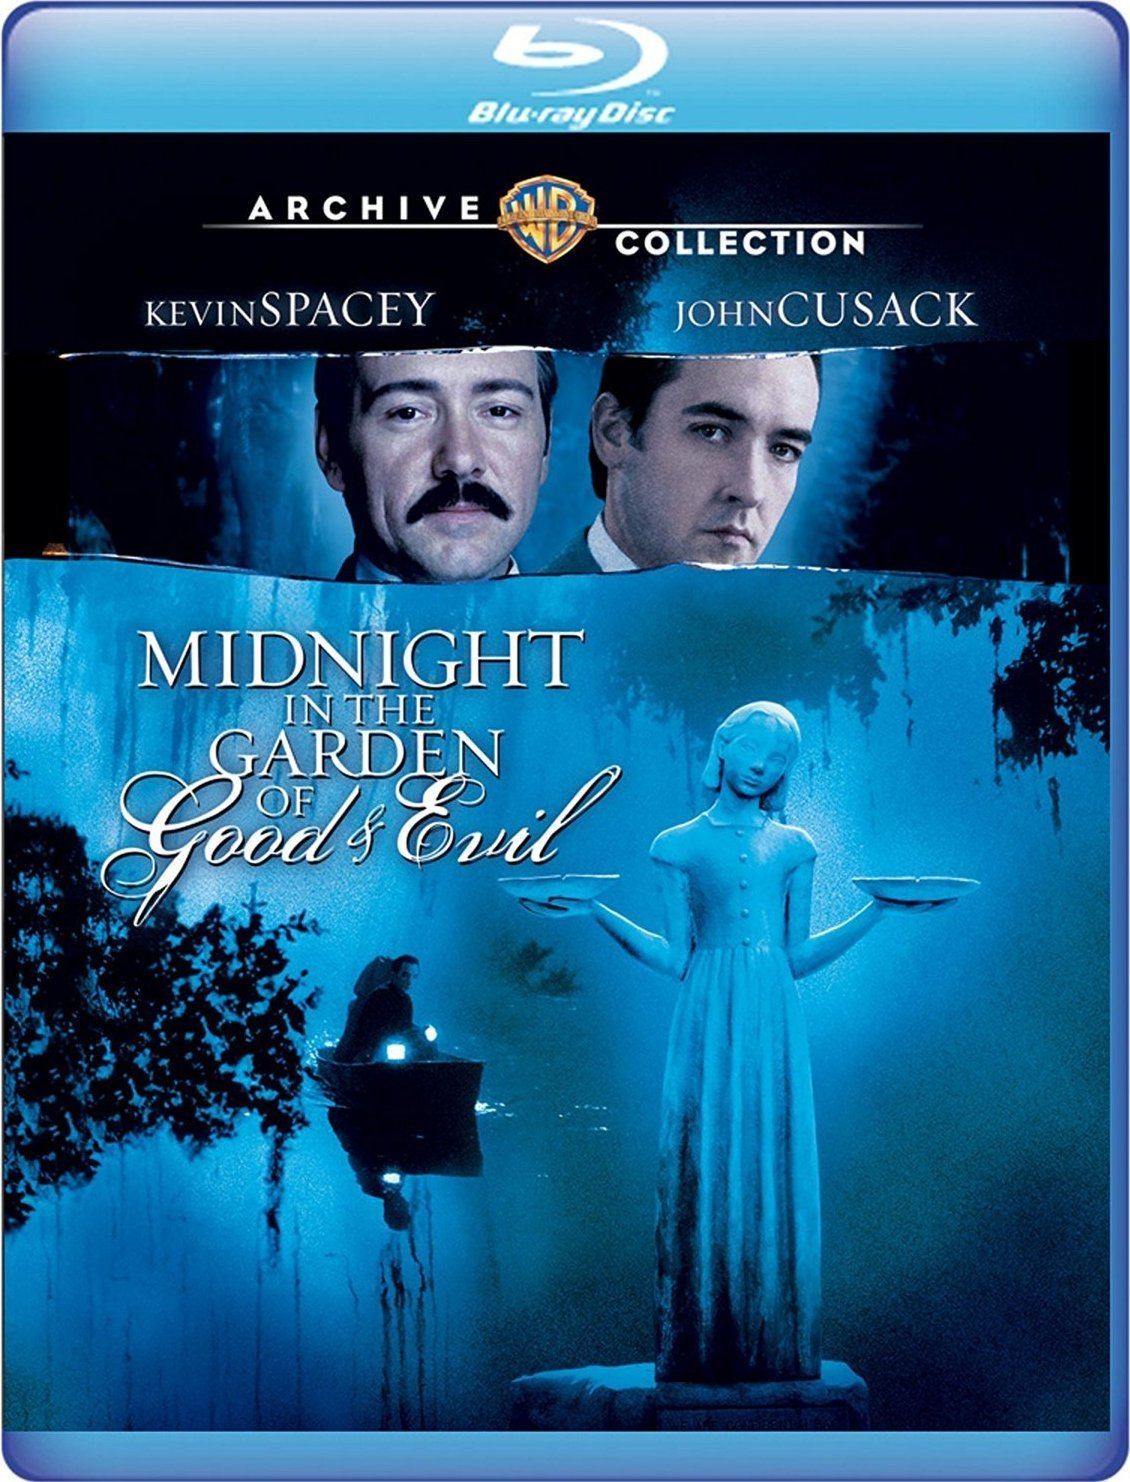 Download Midnight In The Garden Of Good And Evil 1997 Brrip Xvid Mp3 Rarbg Softarchive